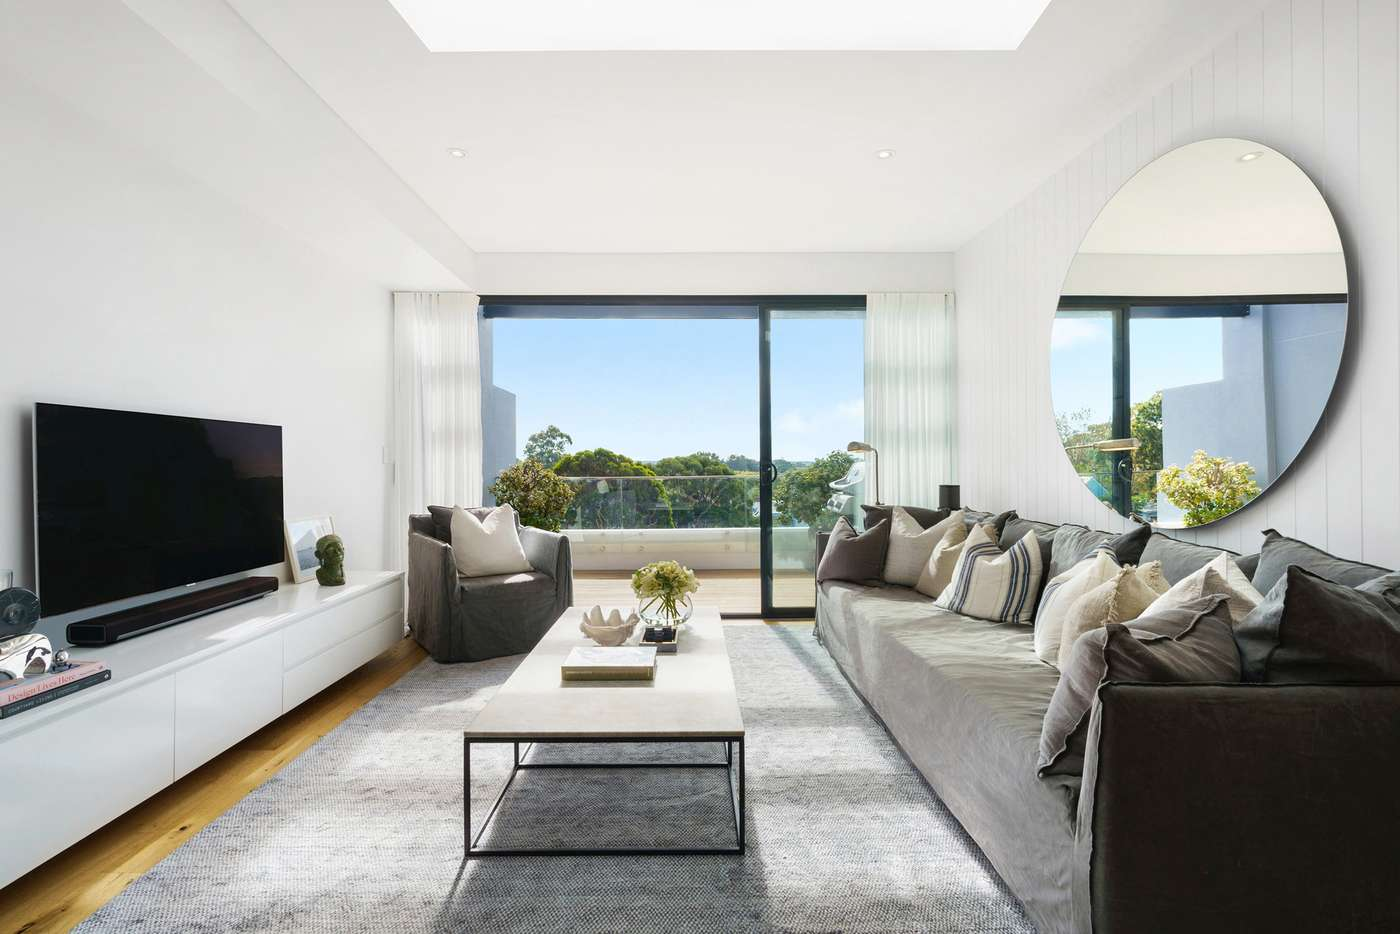 Main view of Homely apartment listing, 305/23 Myrtle Street, North Sydney NSW 2060